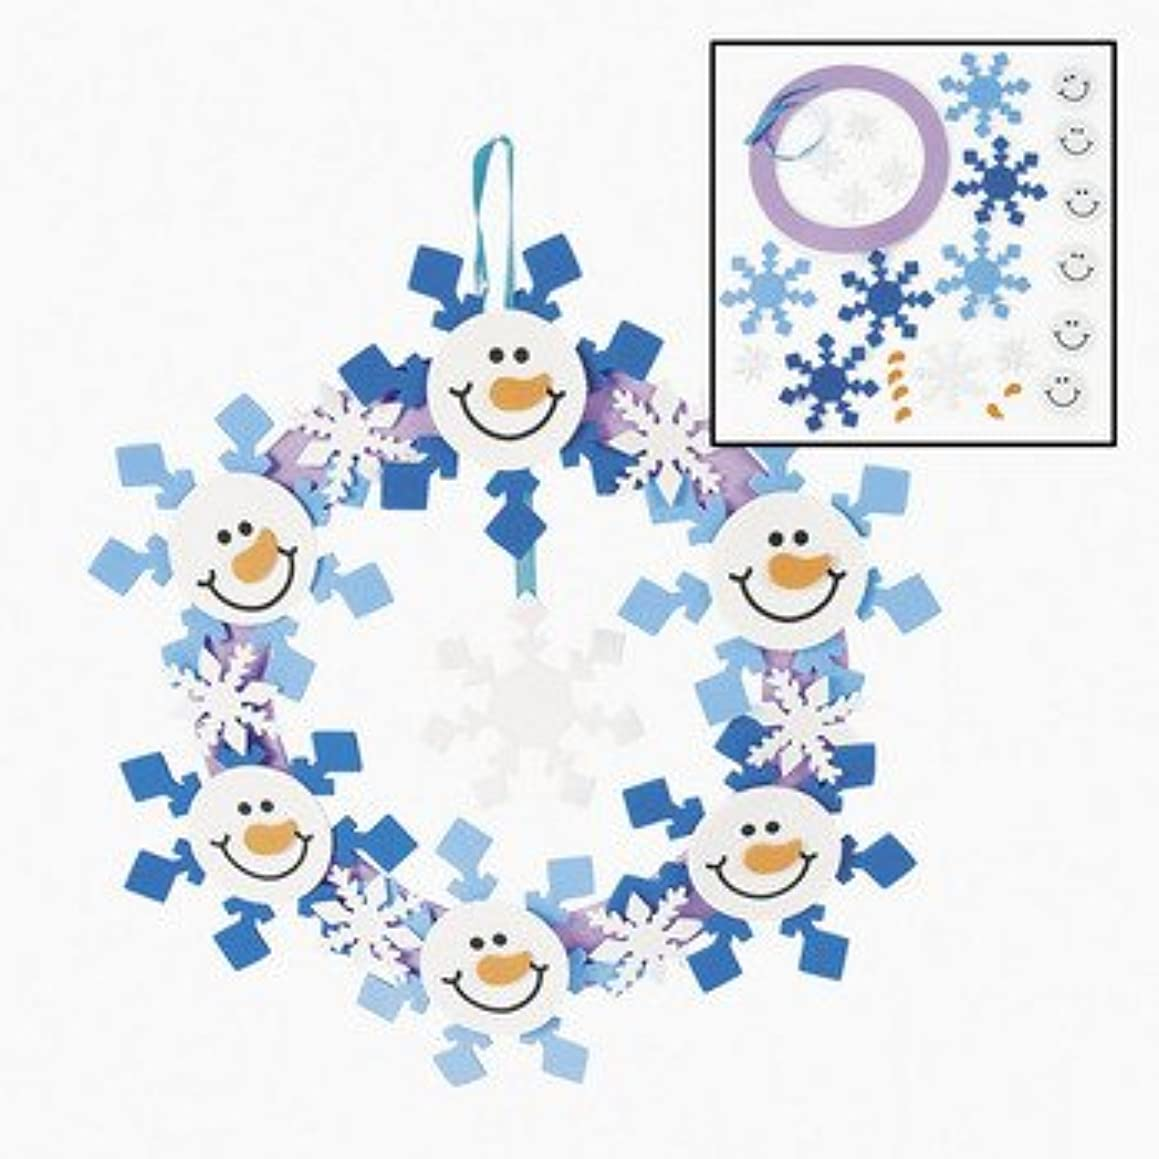 Foam Snowman Wreath Craft Kit - Crafts for Kids and Decoration Crafts-makes 12